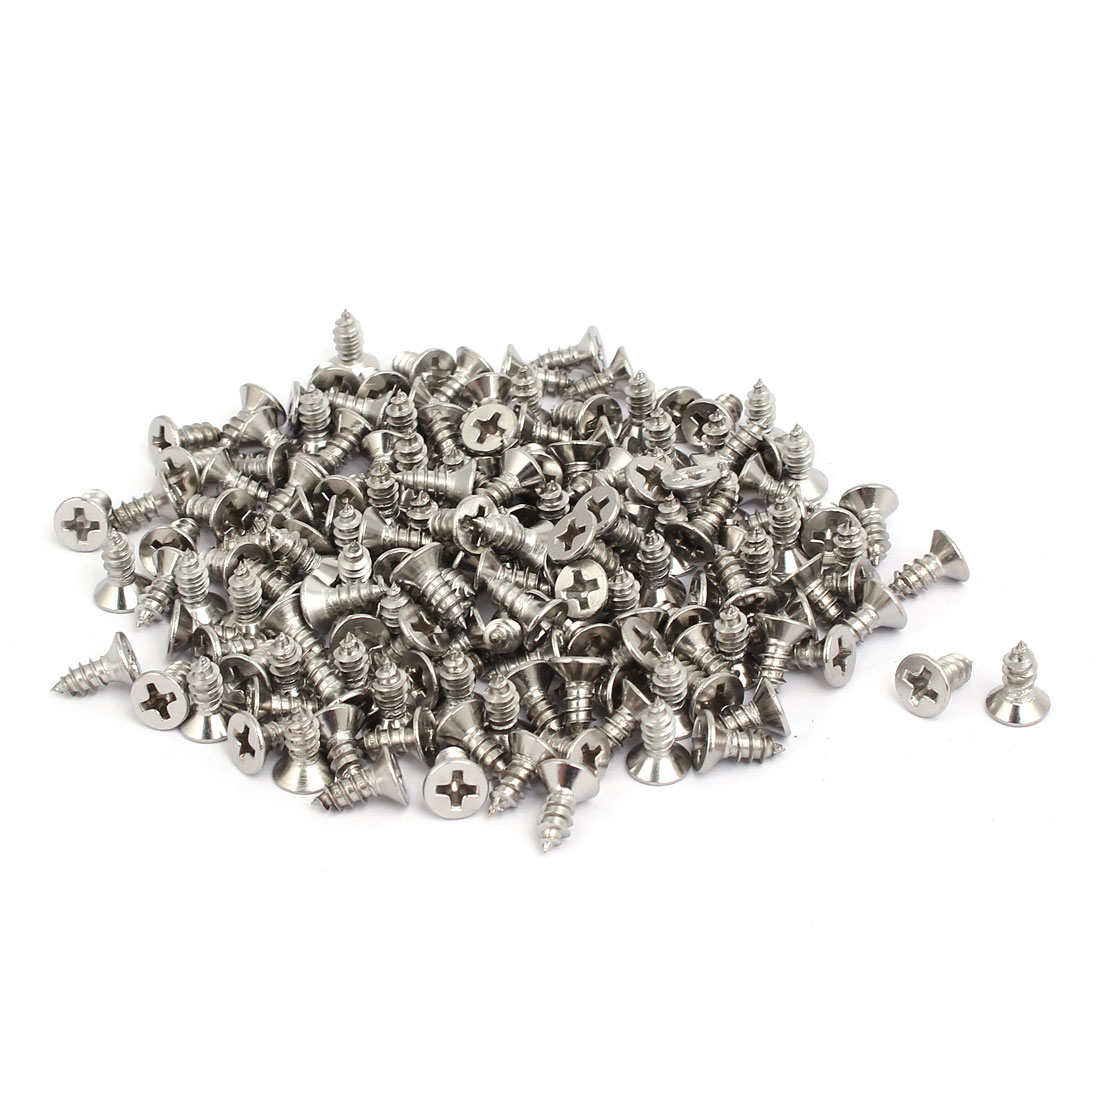 M4x10mm 304 Stainless Steel Phillips Drive Flat Head Self Tapping Screws 250pcs